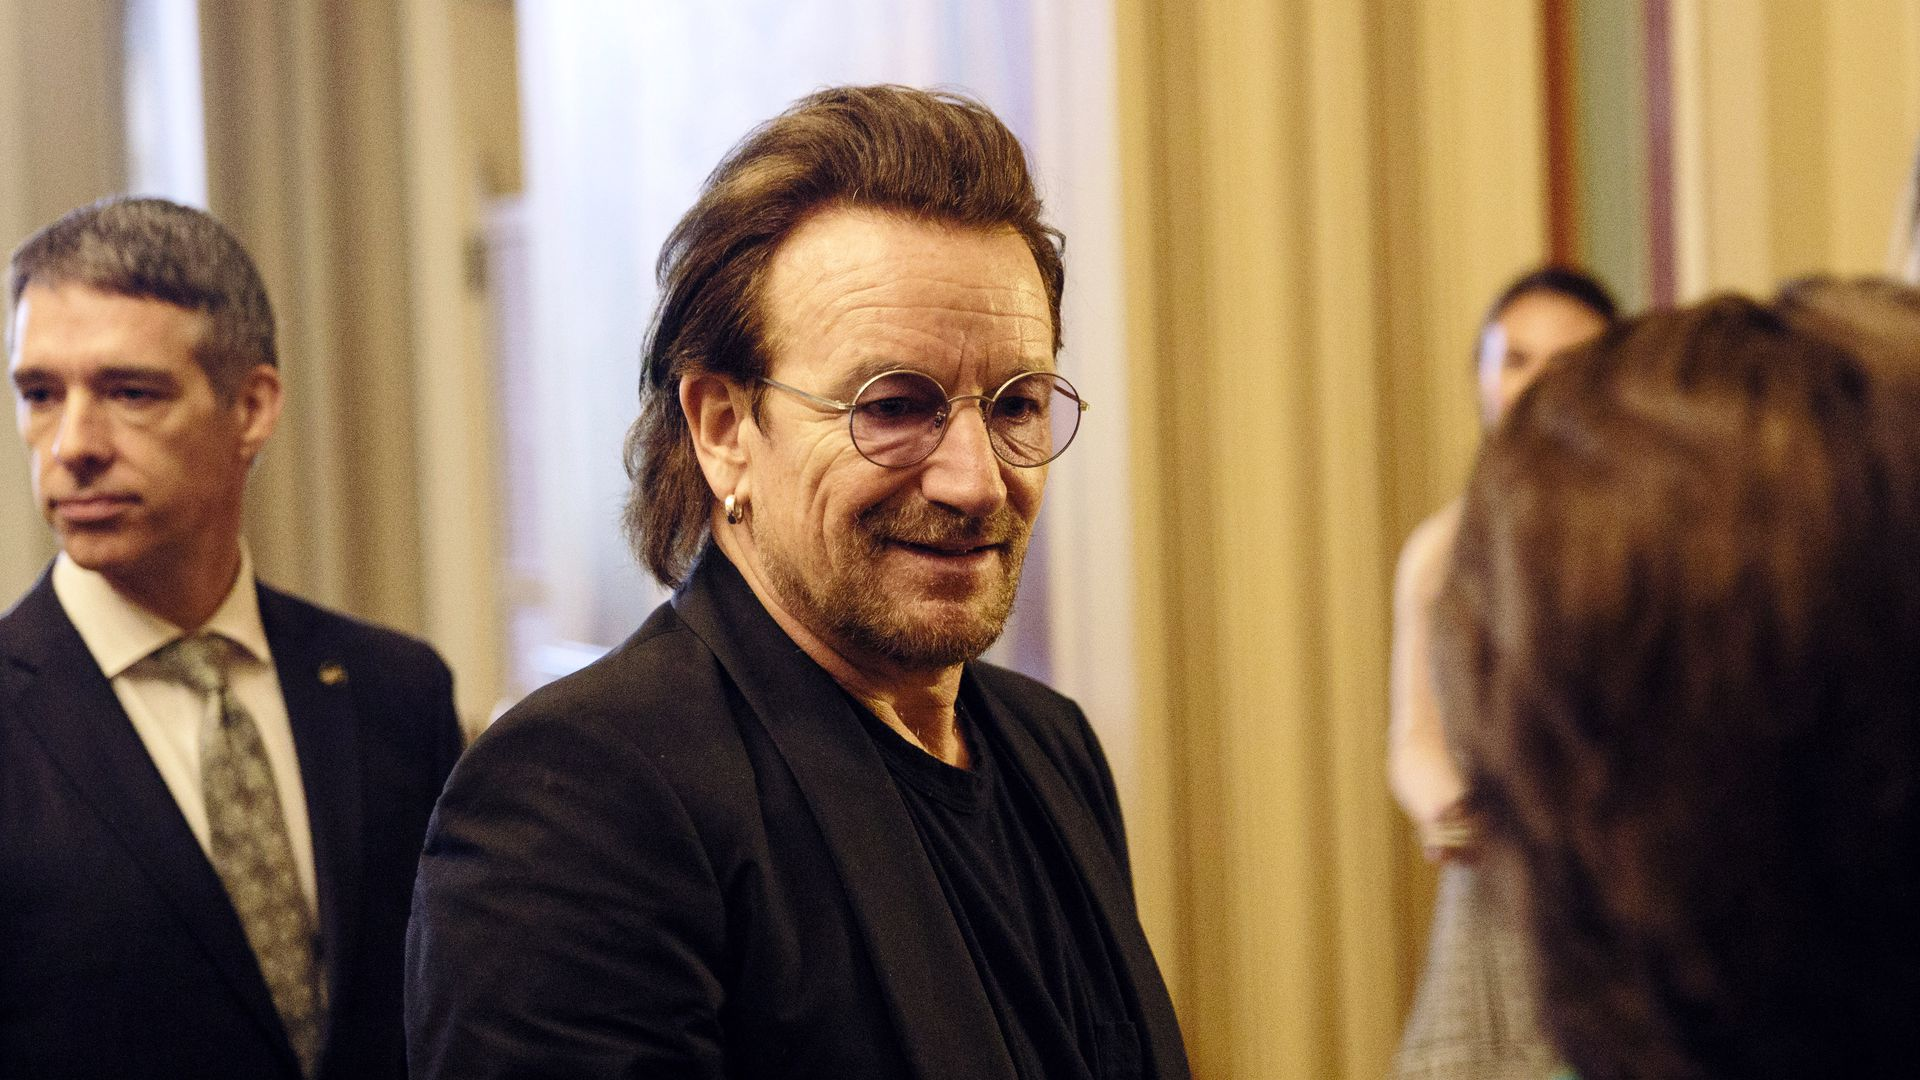 U2 frontman Bono at Capitol Hill